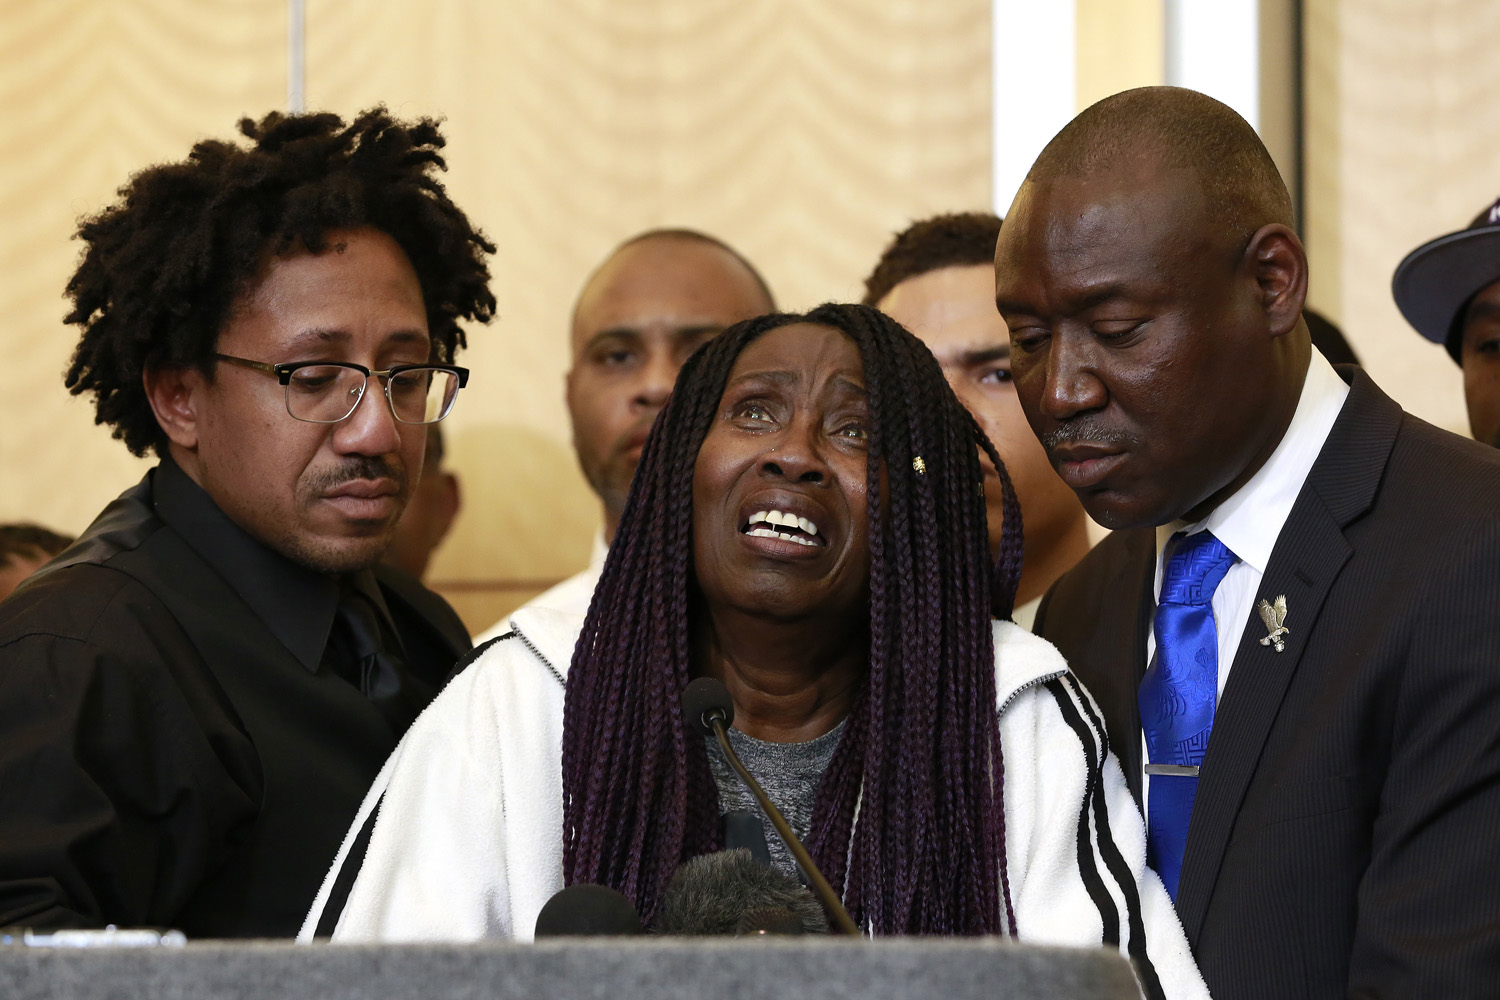 A tearful Sequita Thompson, center, pauses as she discusses the shooting of her grandson, Stephon Clark, during a news conference, Monday, March 26, 2018, in Sacramento, Calif. Clark, who was unarmed, was shot and killed by Sacramento police officers who were responding to a call about person smashing car windows a week ago. Thompson was accompanied by Clark's uncle, Kurtis Gordon, left, and attorney Ben Crump, right. (AP Photo/Rich Pedroncelli)